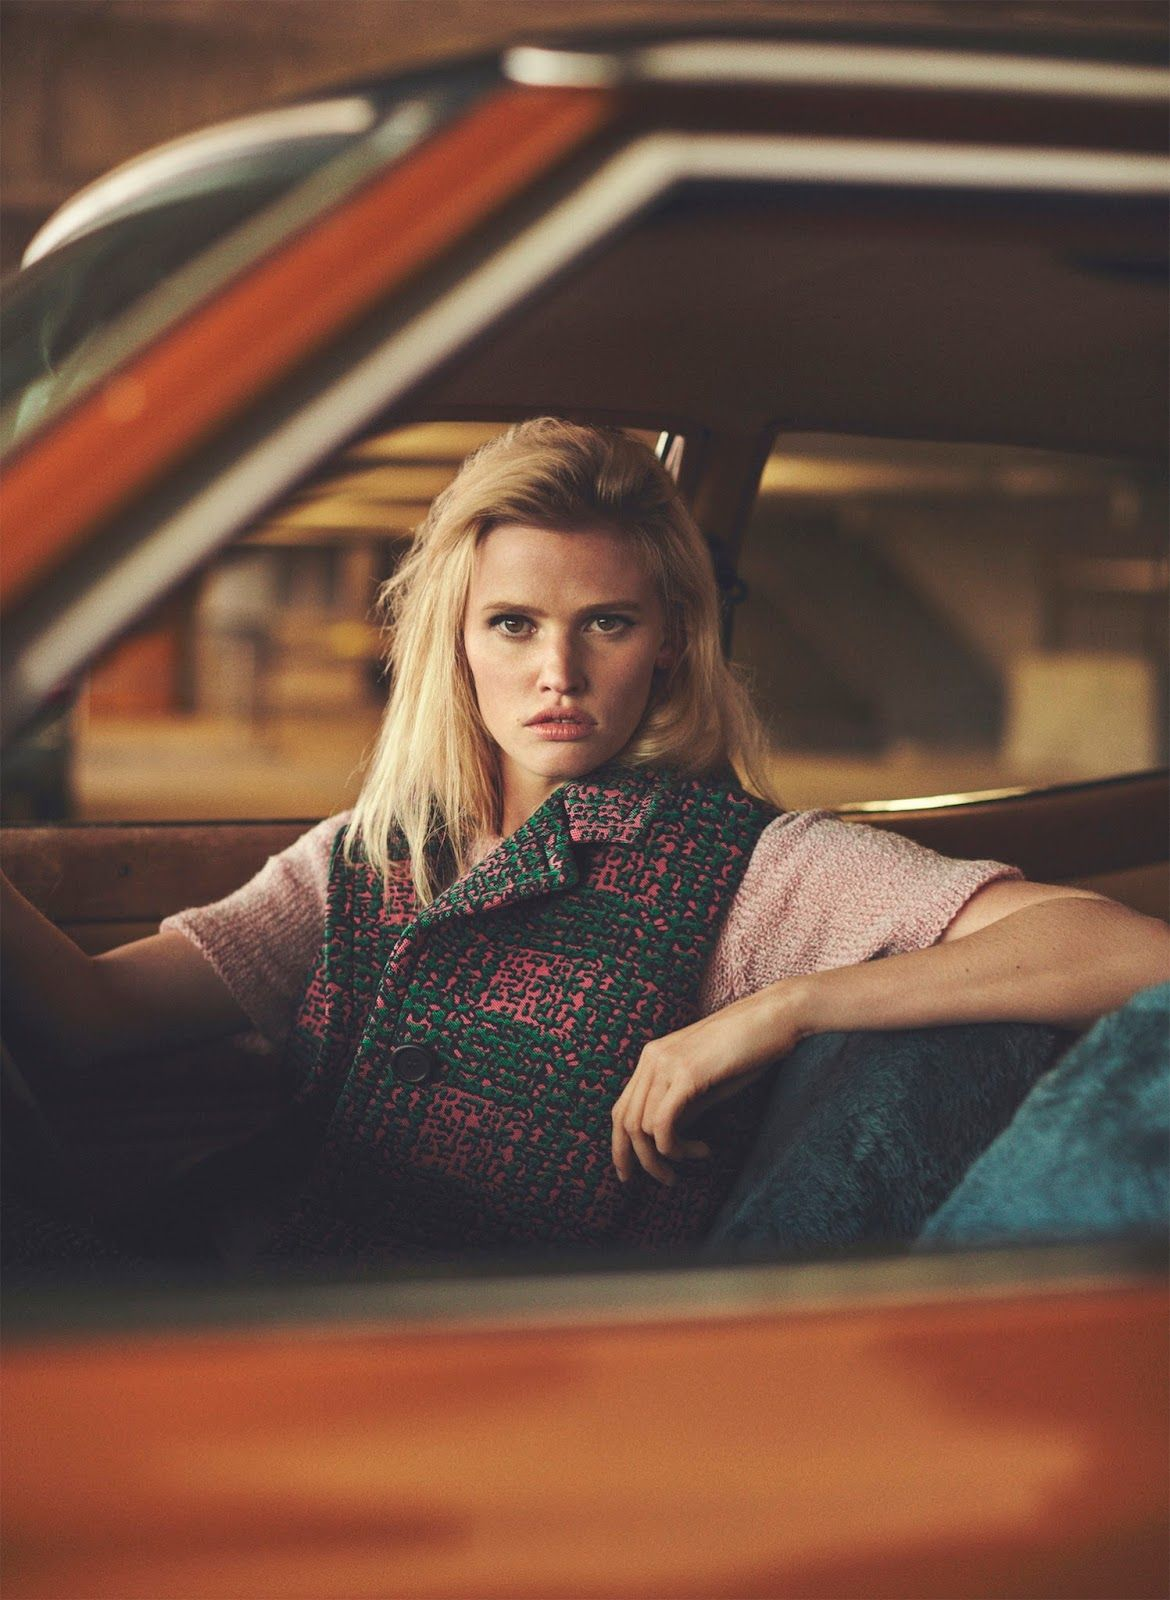 back seat driver: lara stone by emma tempest for russh #66 october / november 2015 | visual optimism; fashion editorials, shows, campaigns & more!